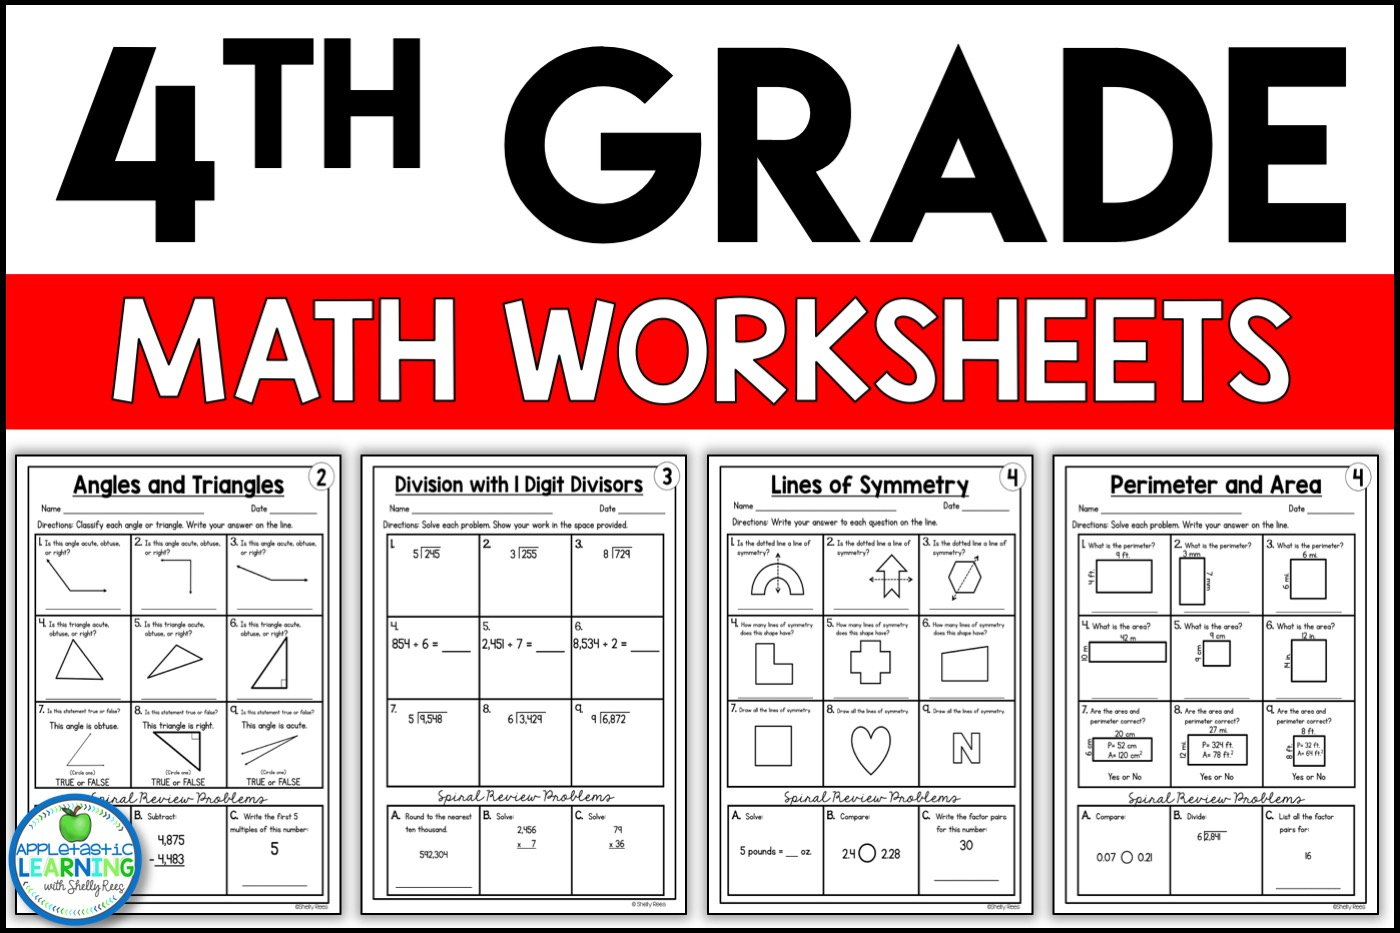 4th Grade Math Worksheets Free and Printable - Appletastic ...